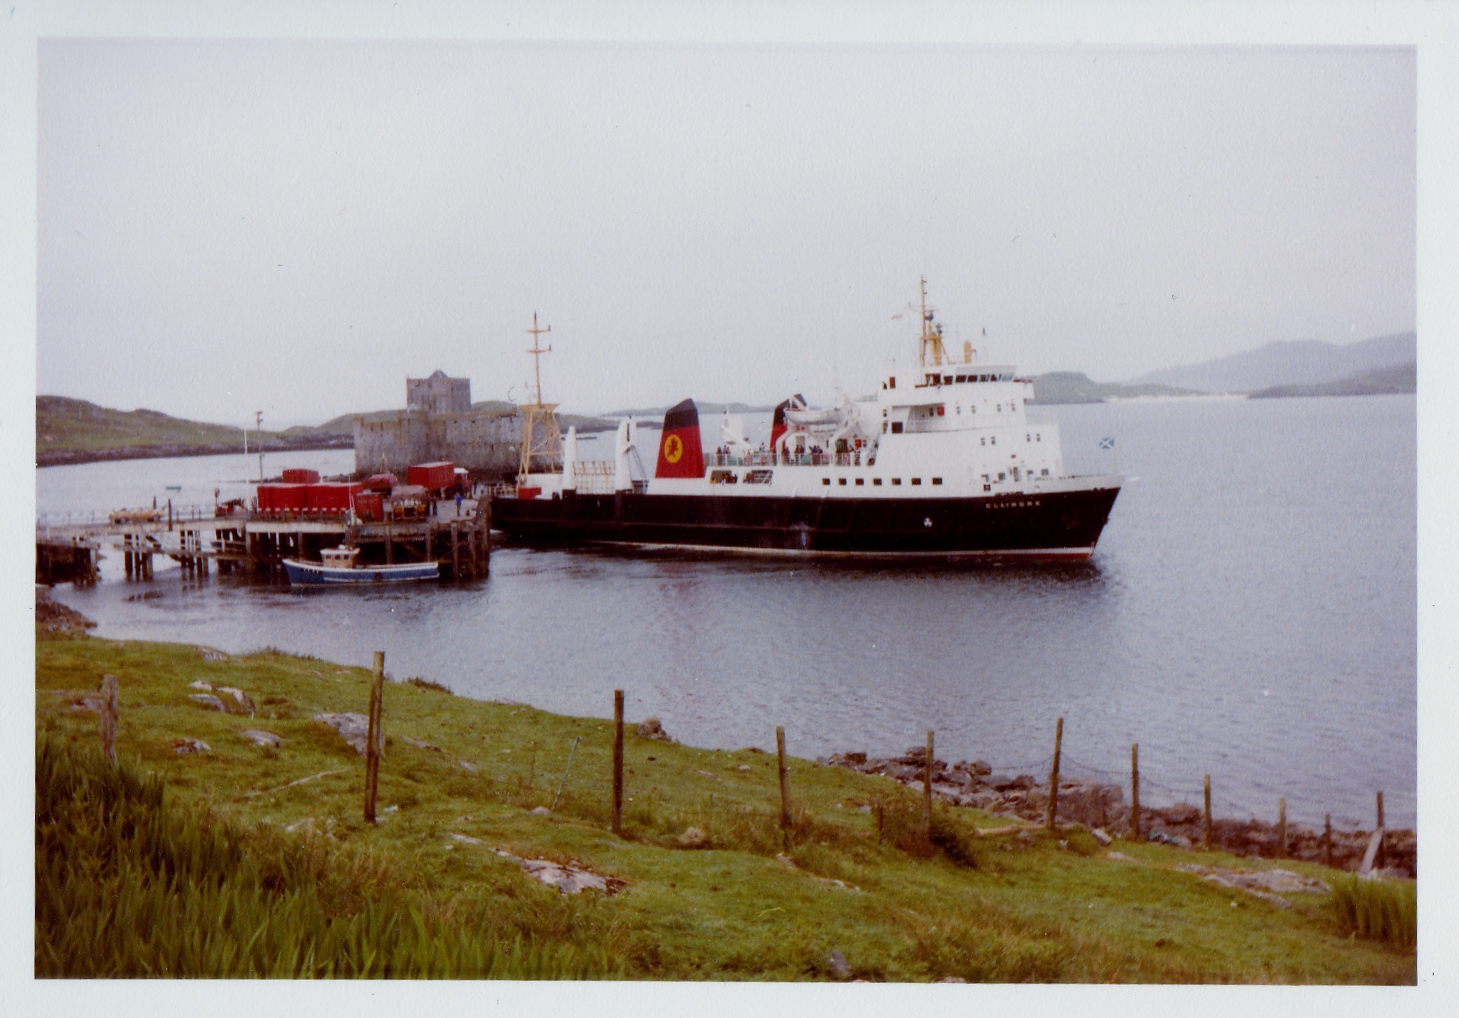 Claymore leaving Castlebay (Jim Aikman Smith)